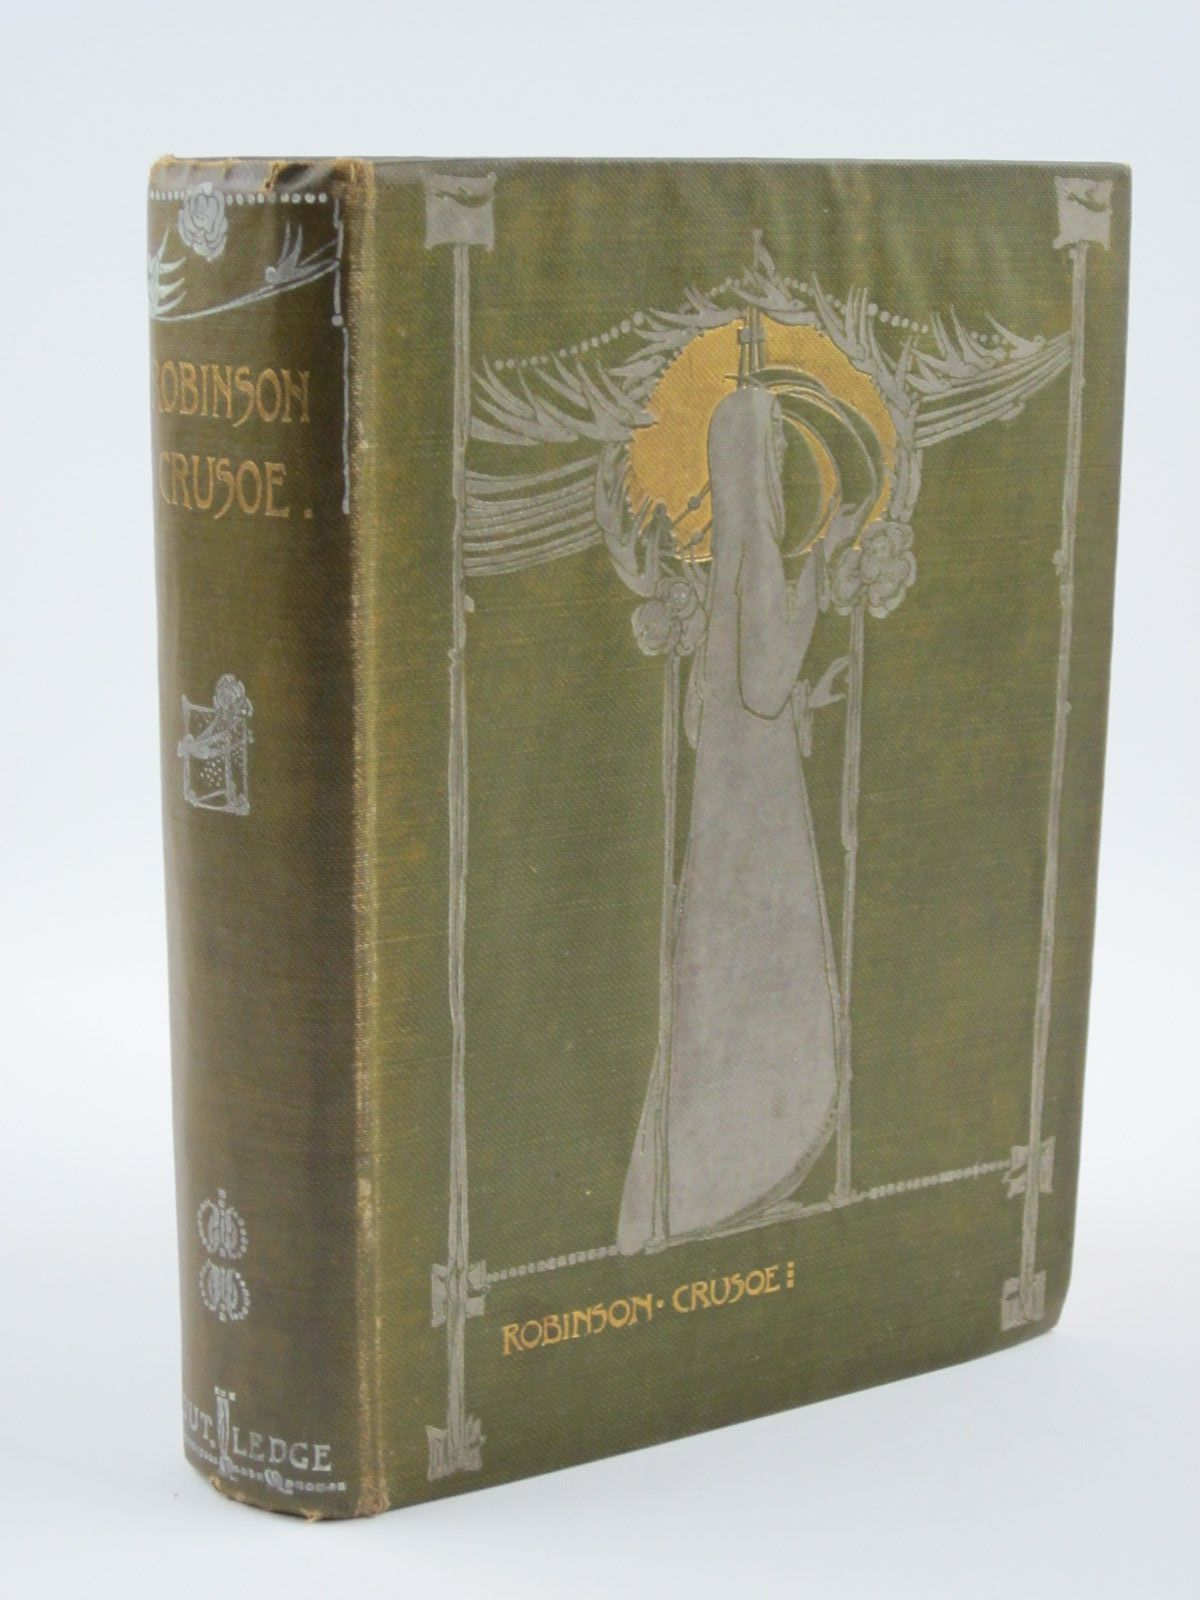 robinson crusoe by daniel defoe featured books stella rose s 30 00 photo of the life and adventures of robinson crusoe